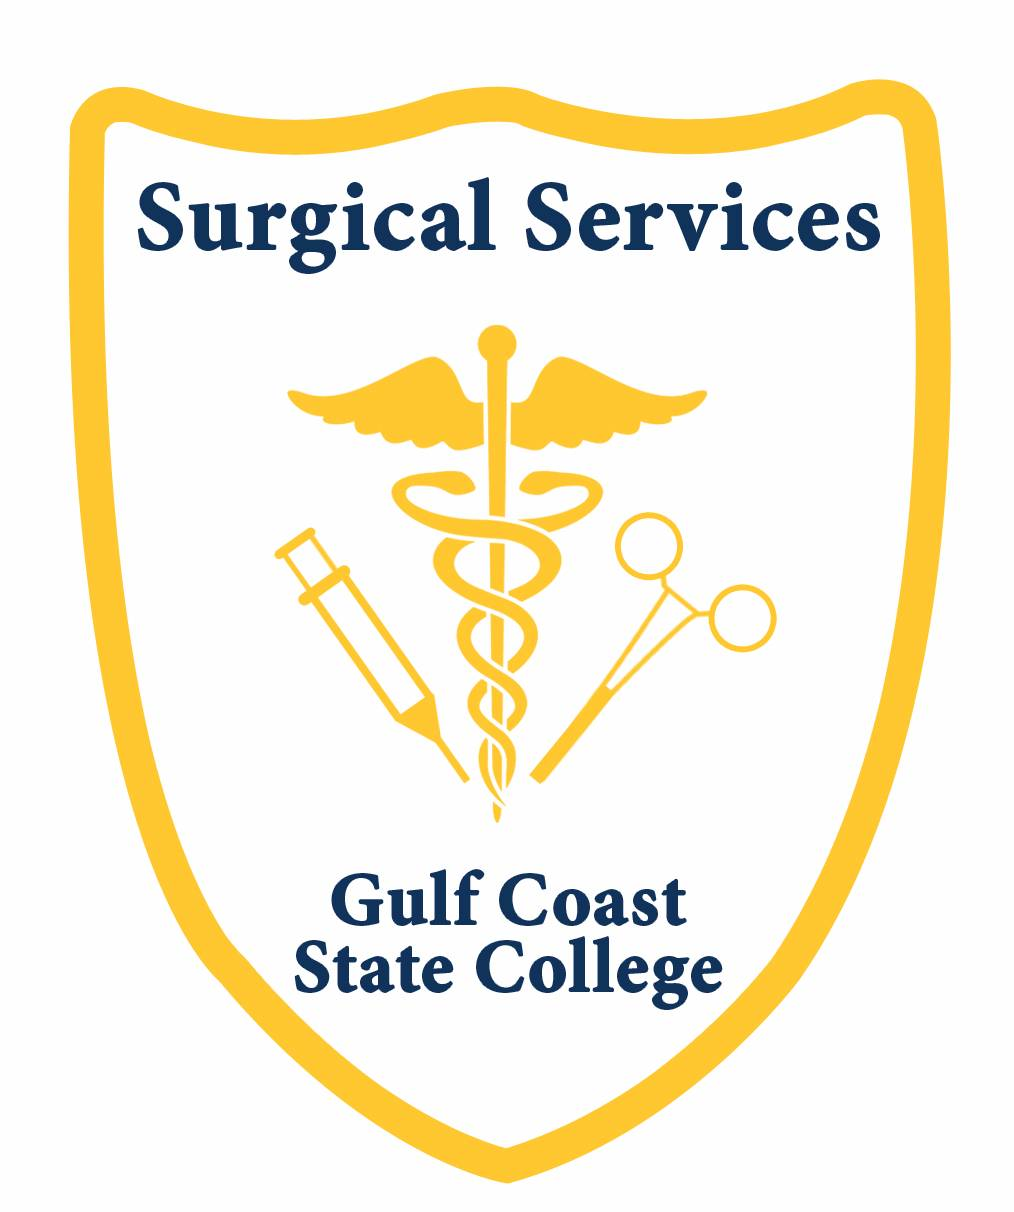 SurgicalServices